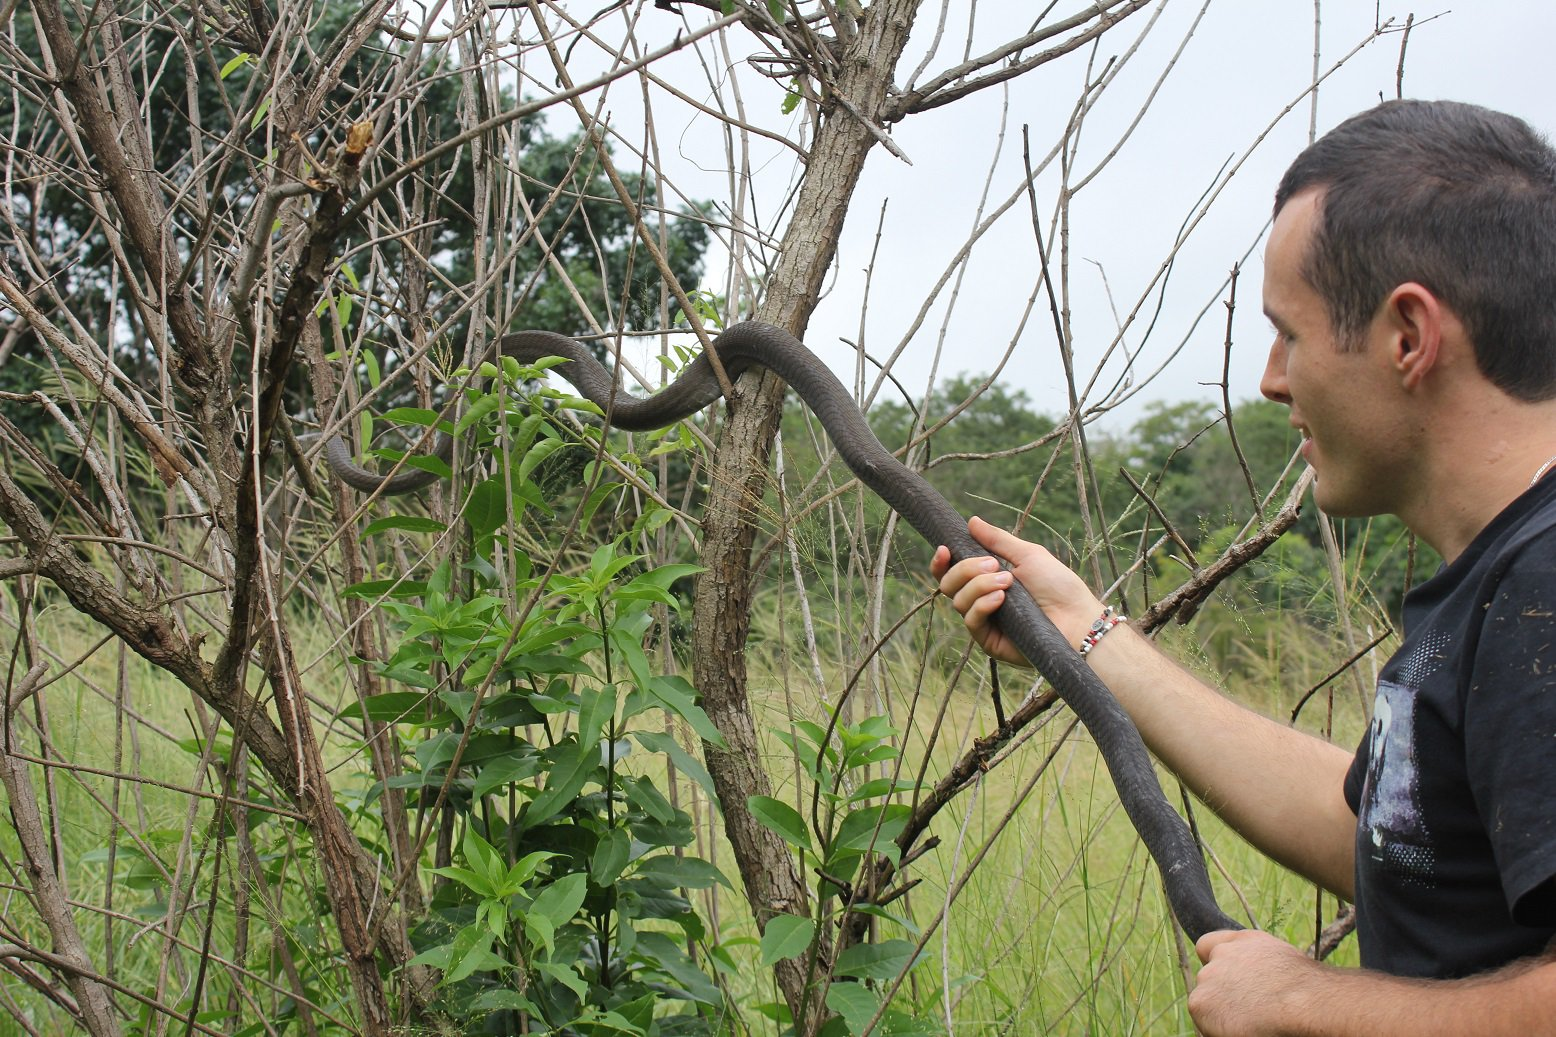 Nick Evans releases a Black Mamba